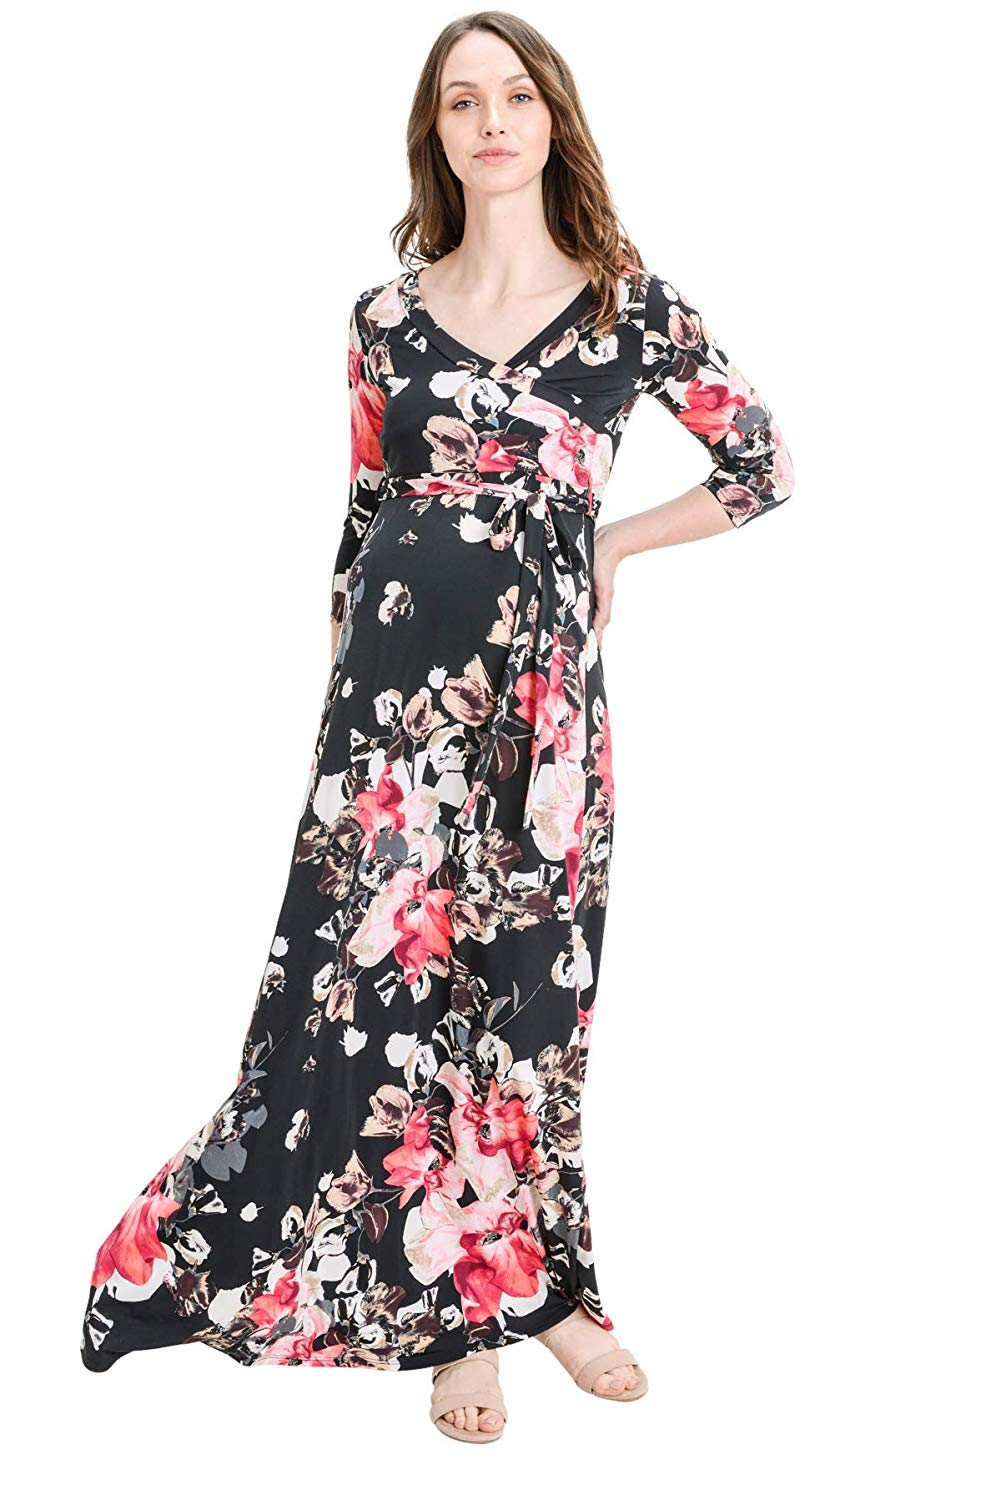 Wrap Maxi Maternity Dress with Belt - Mommylicious